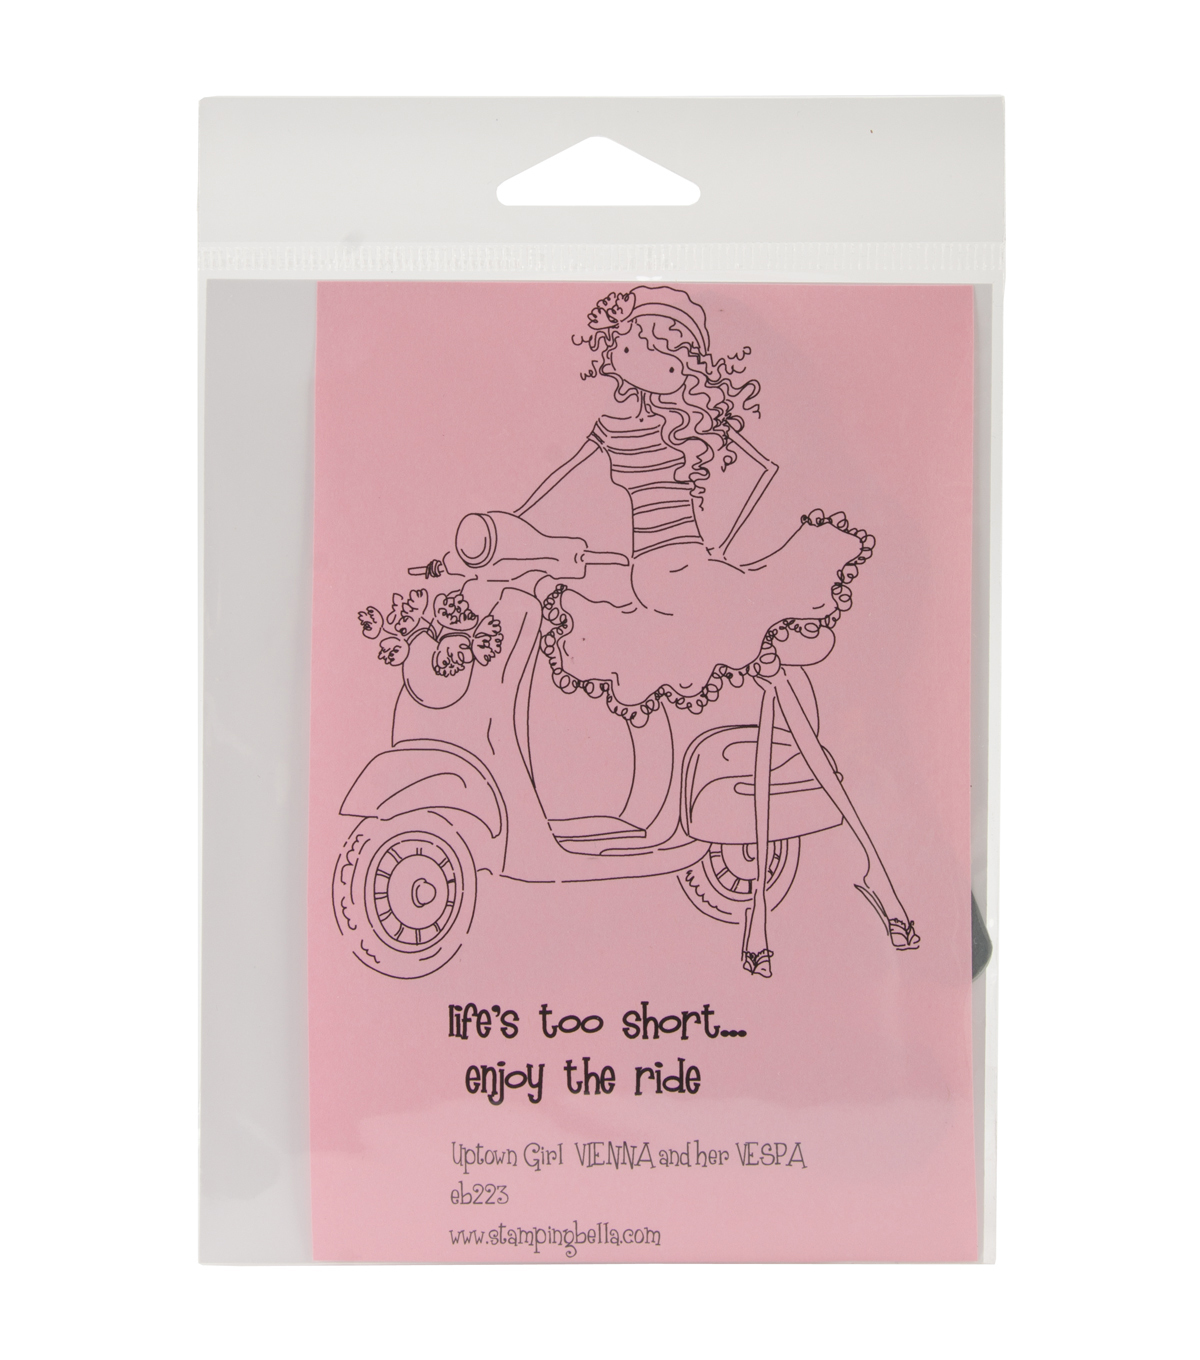 Stamping Bella Unmounted Rubber Stamp-Uptown Girl Vienna And Her Vespa